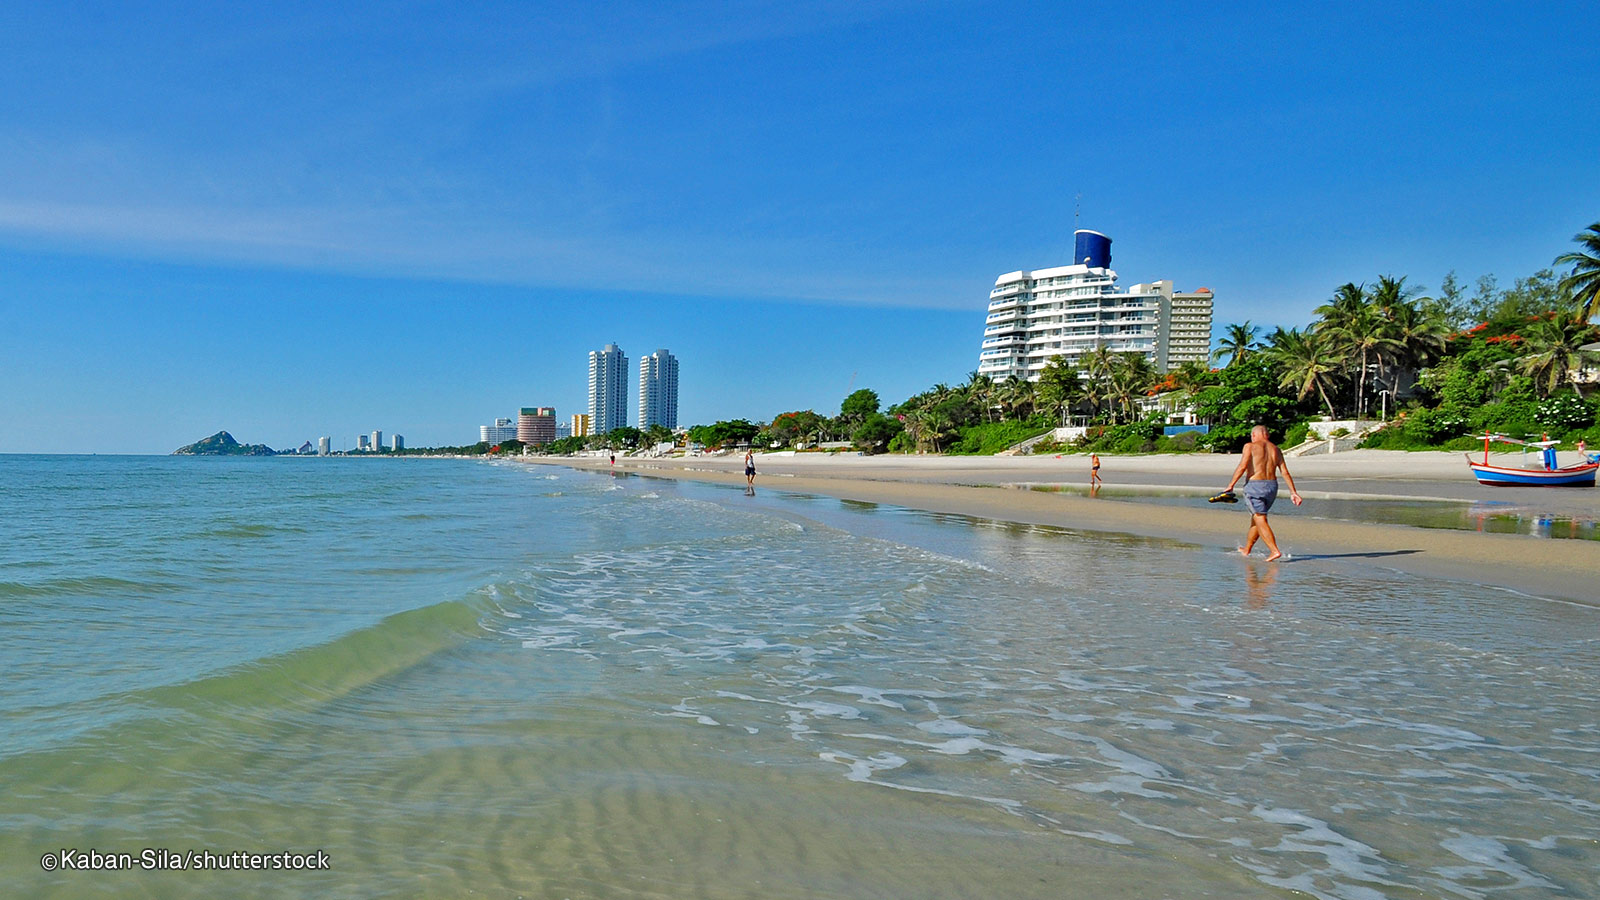 Hua Hin Beach The Gulf Coast Beaches, What to Do in Hua Hin - Cha-Am by Areas - Hua Hin - Cha-Am Attractions